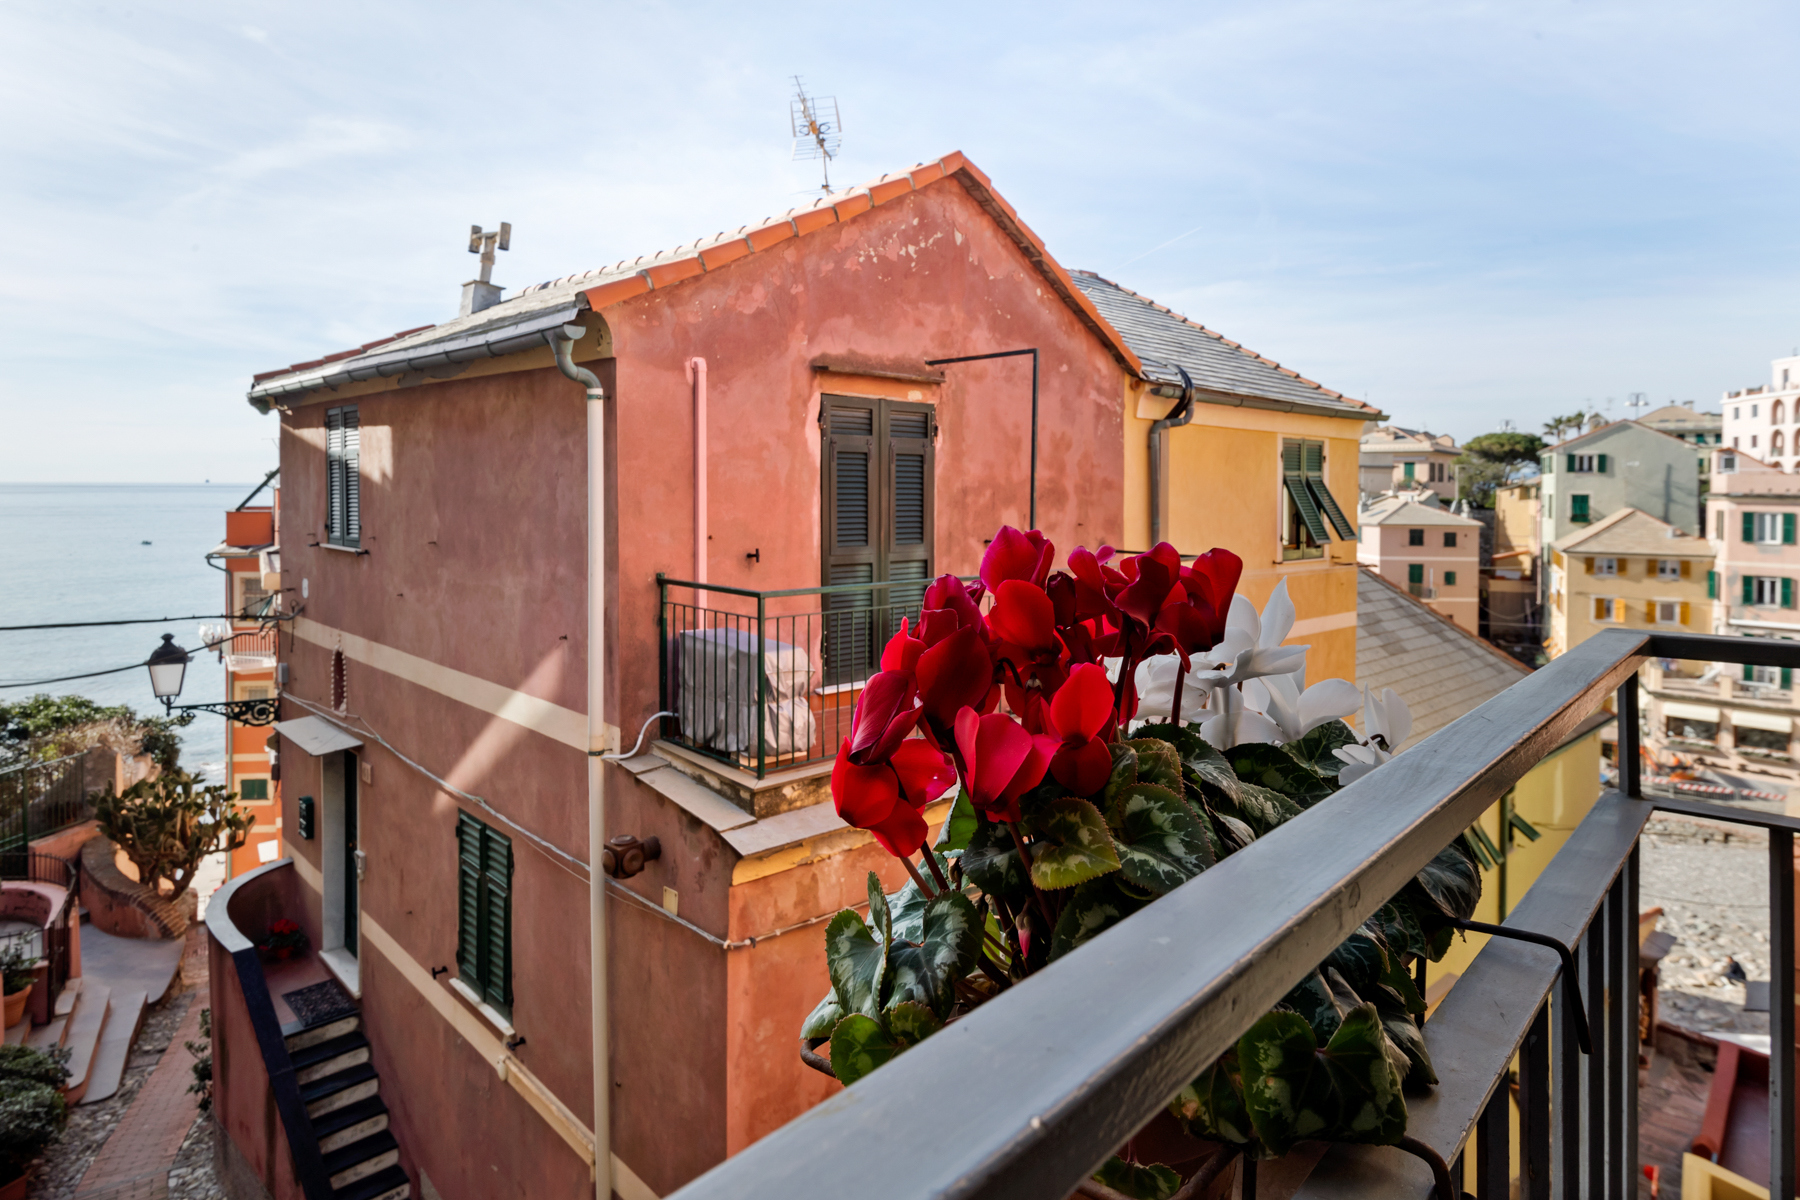 Single Family Homes for Sale at Residential property for Sale in Genova (Italy) Genova, Genoa Italy